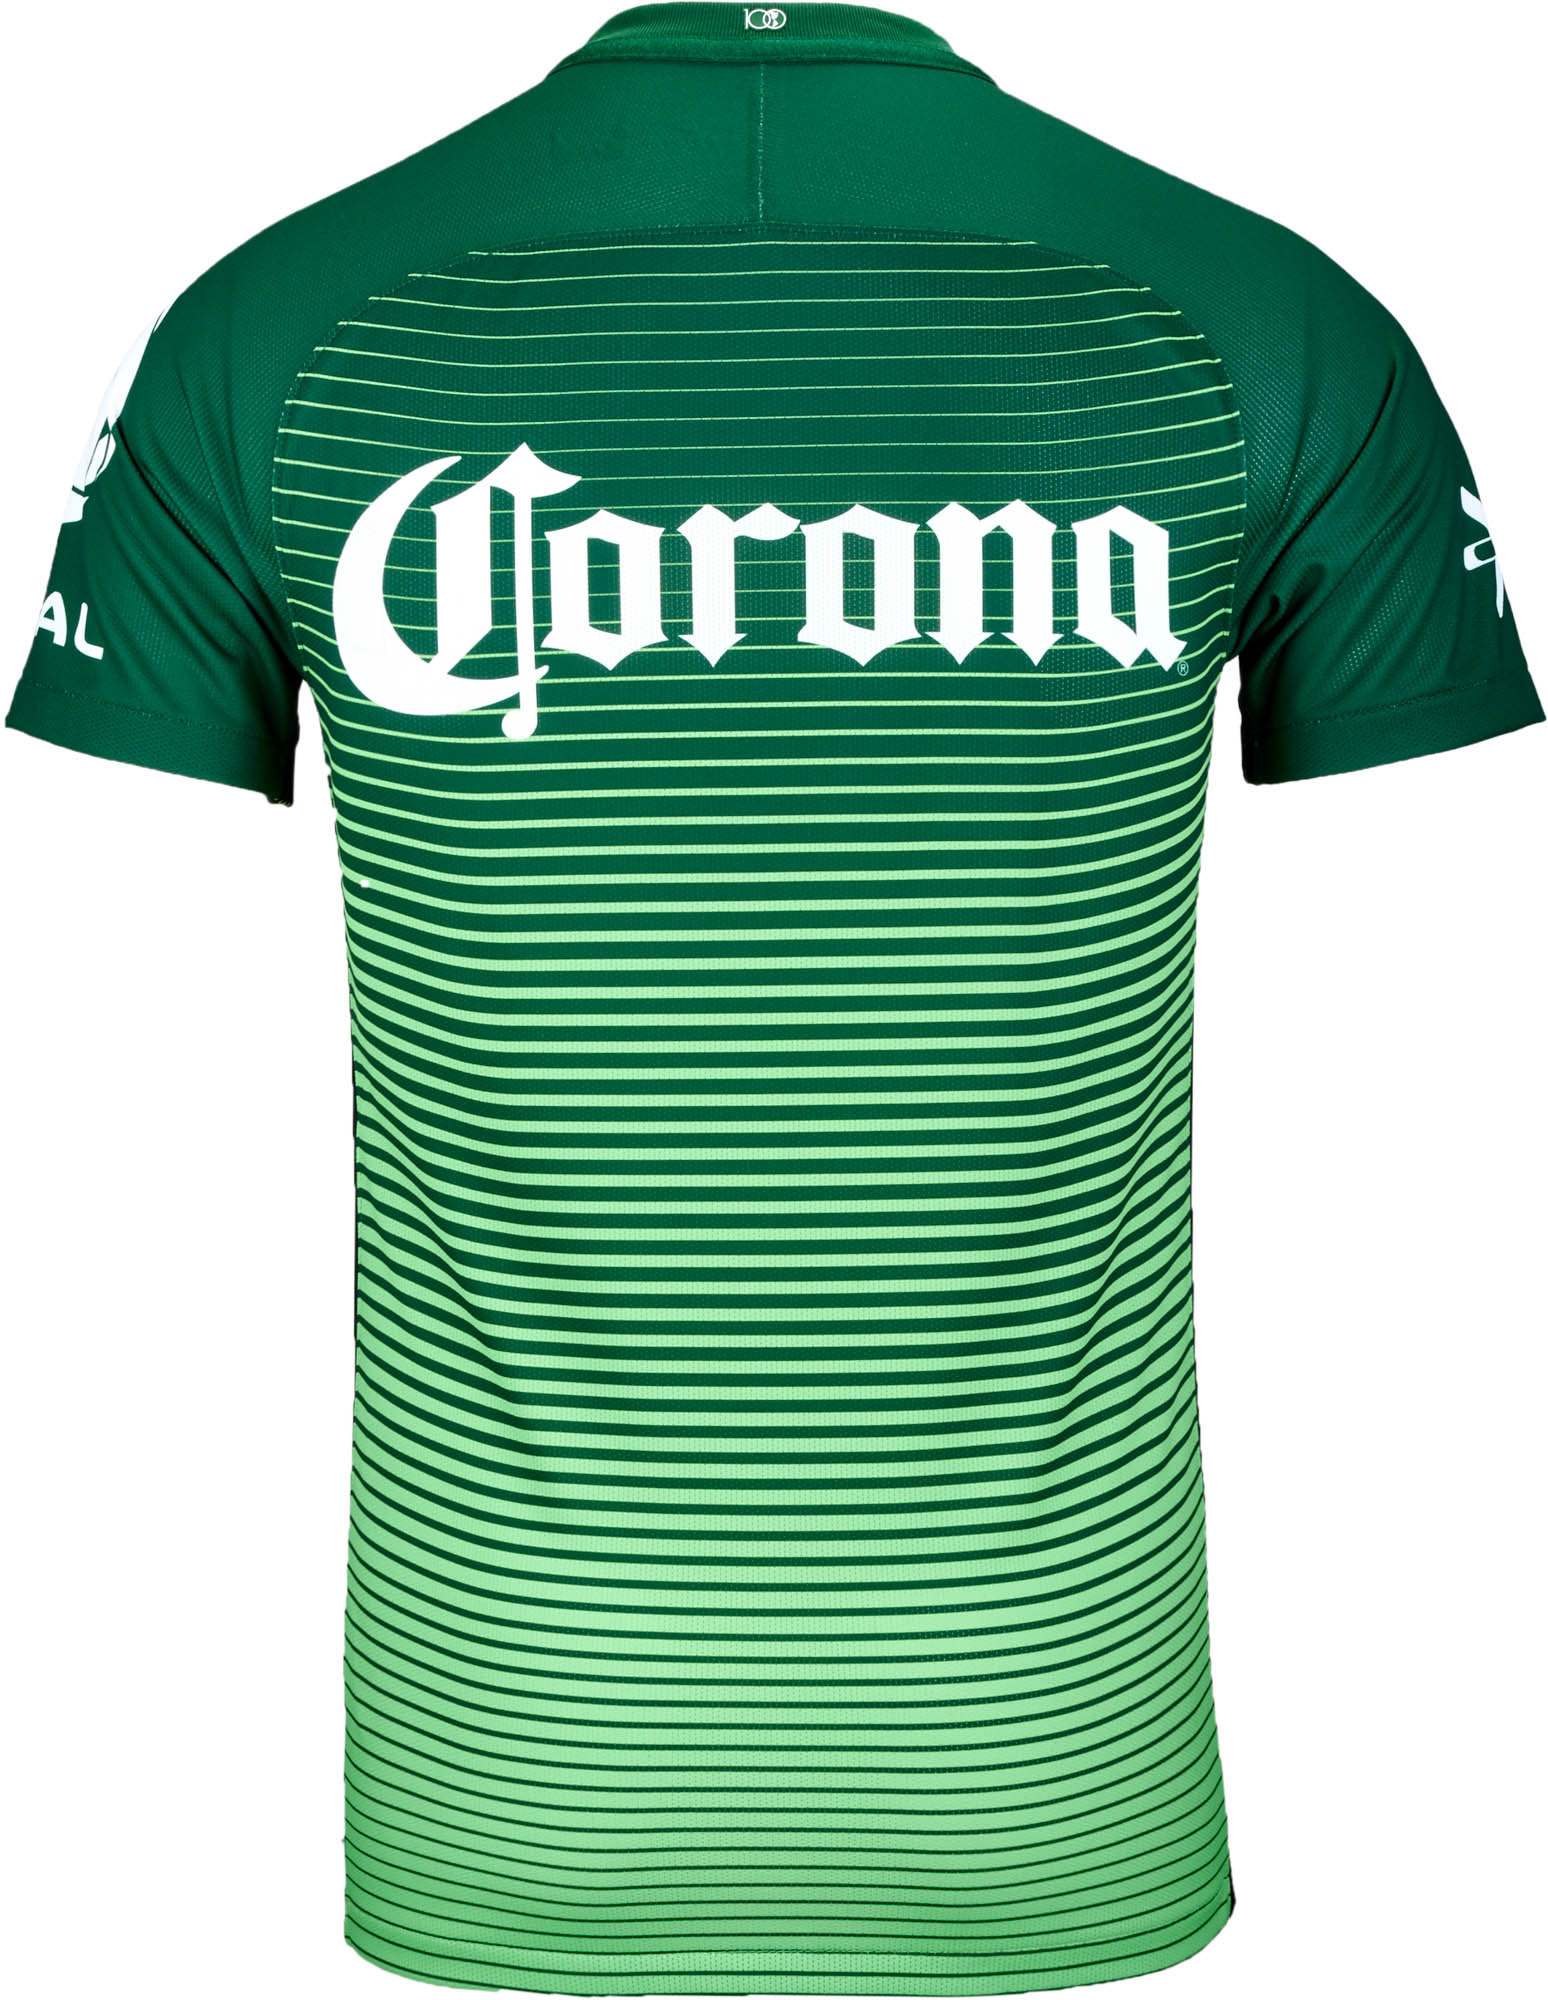 premium selection 104e6 4c8ce Nike Club America Match 3rd Jersey 2016-17 - Soccer Master